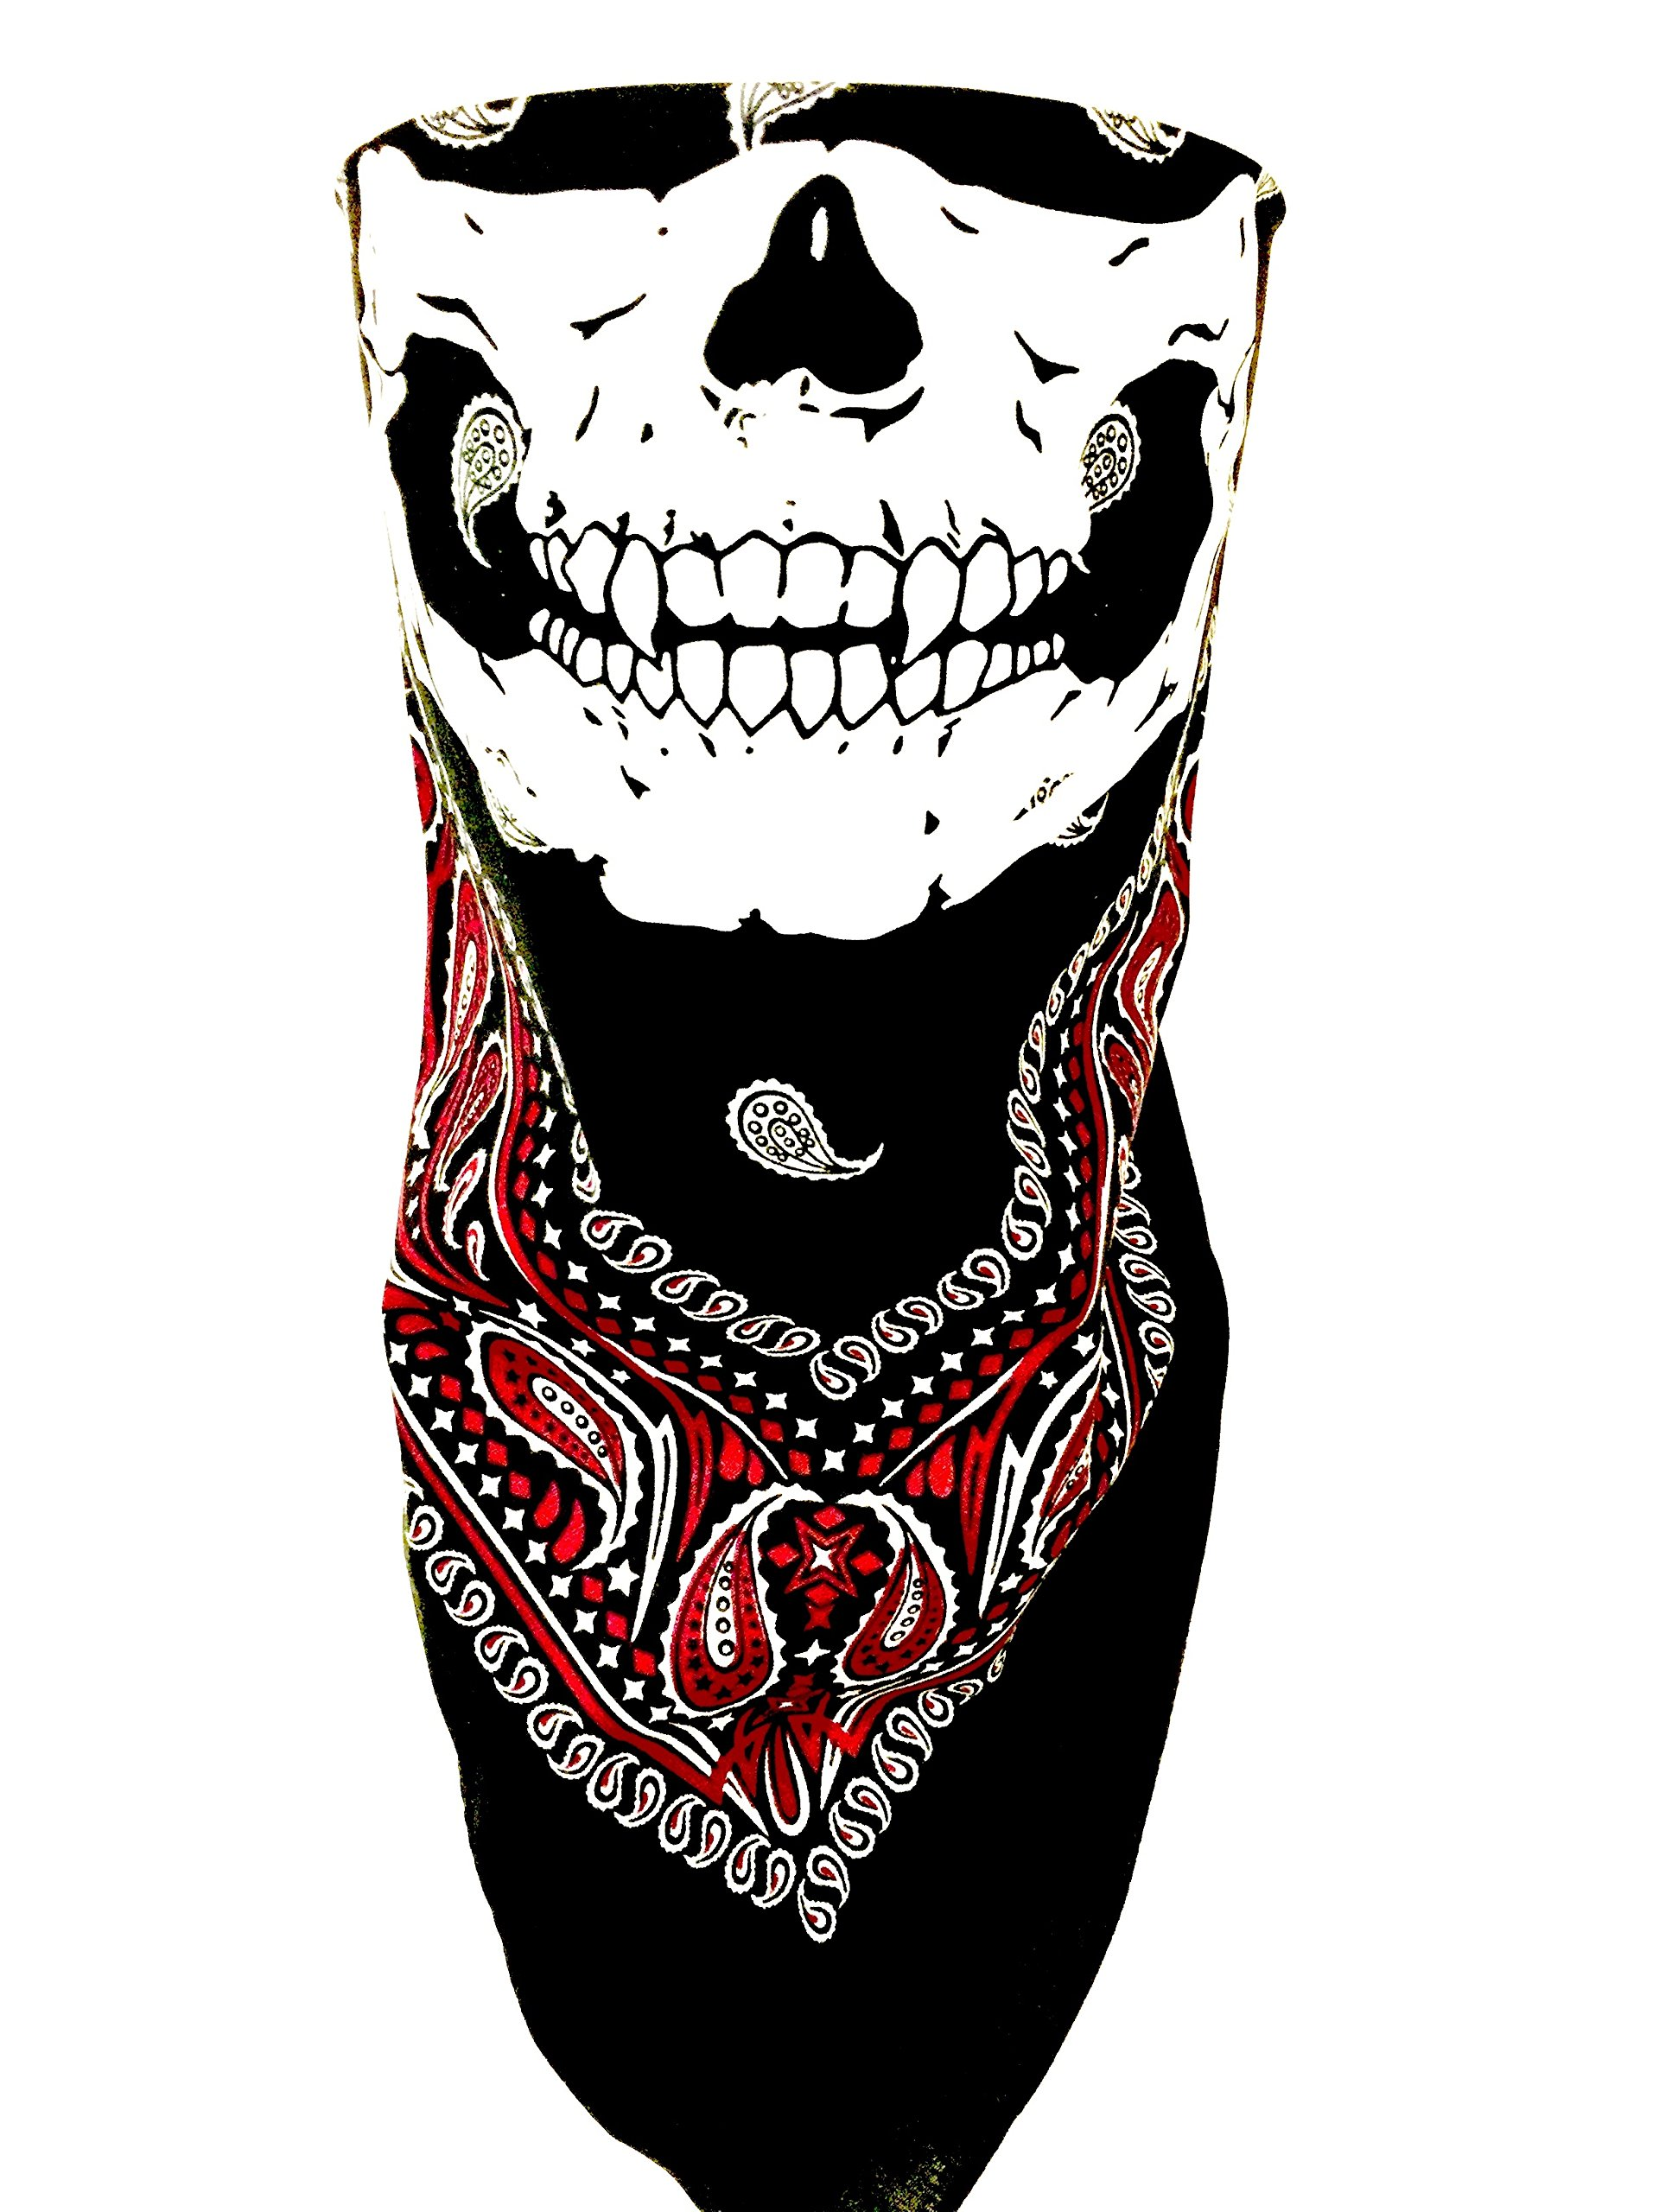 Black Red White Paisley VELCRO®Brand Adjustable Close Bandanna Mask Face Cover